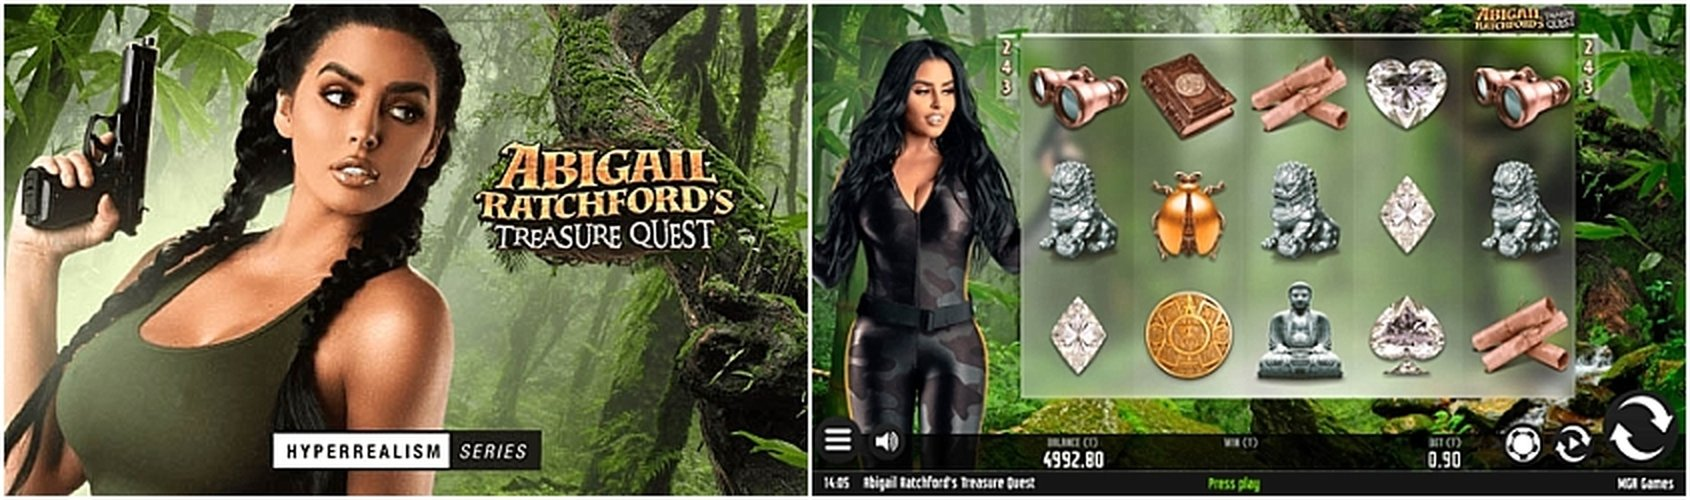 The Abigail Ratchfords Treasure Quest Online Slot Demo Game by MGA